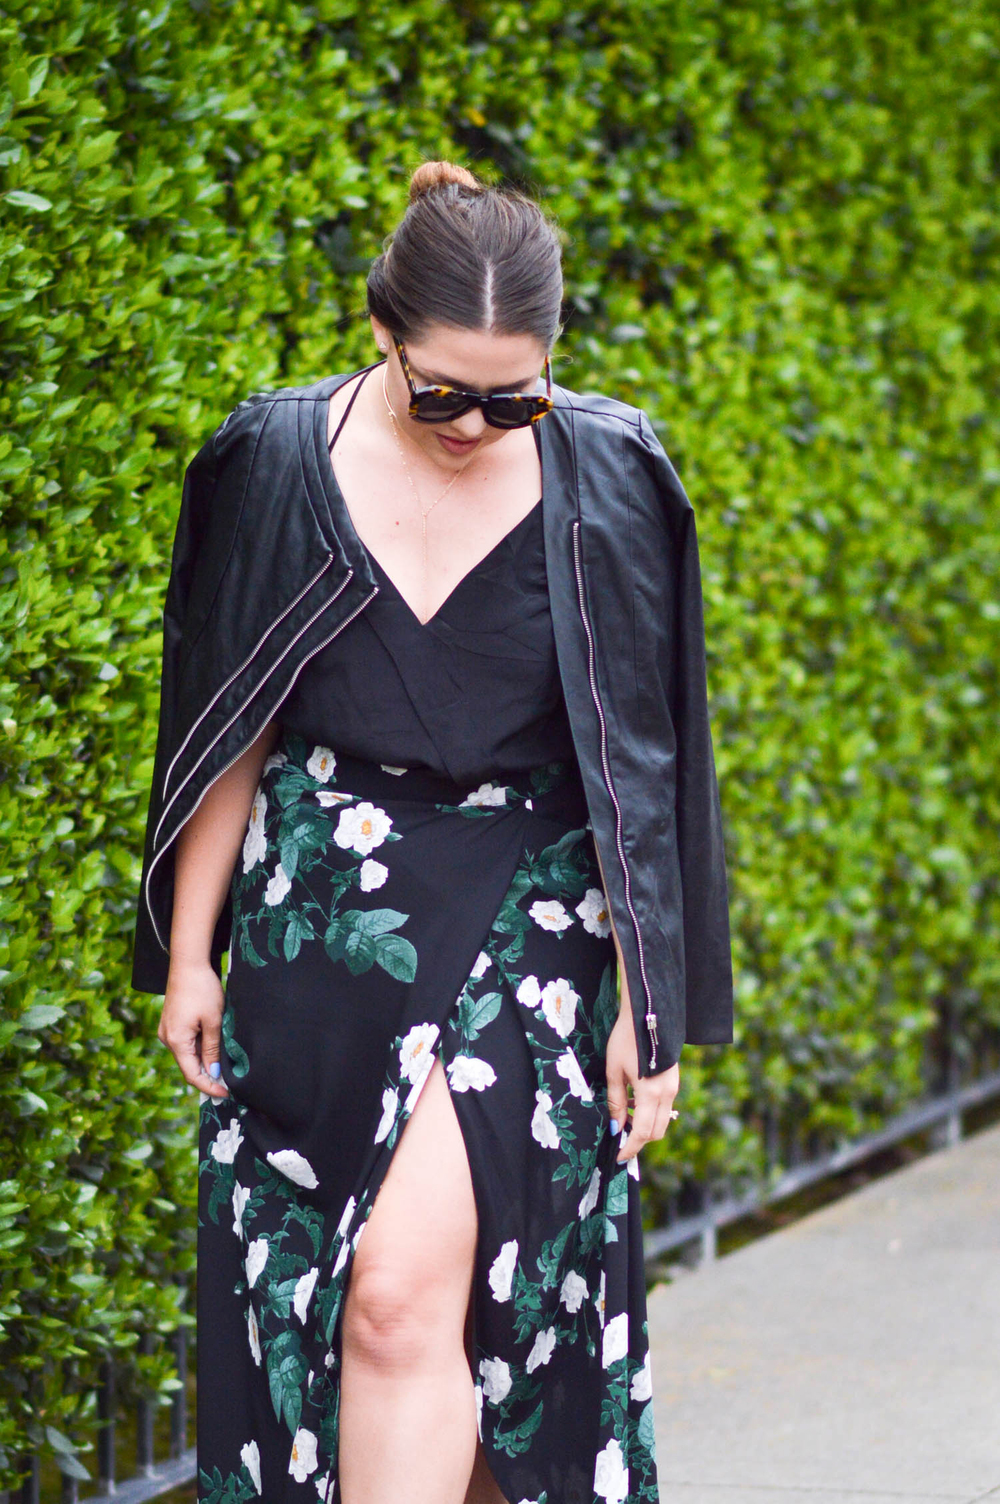 Date Night Florals outfit via. www.birdieshoots.com